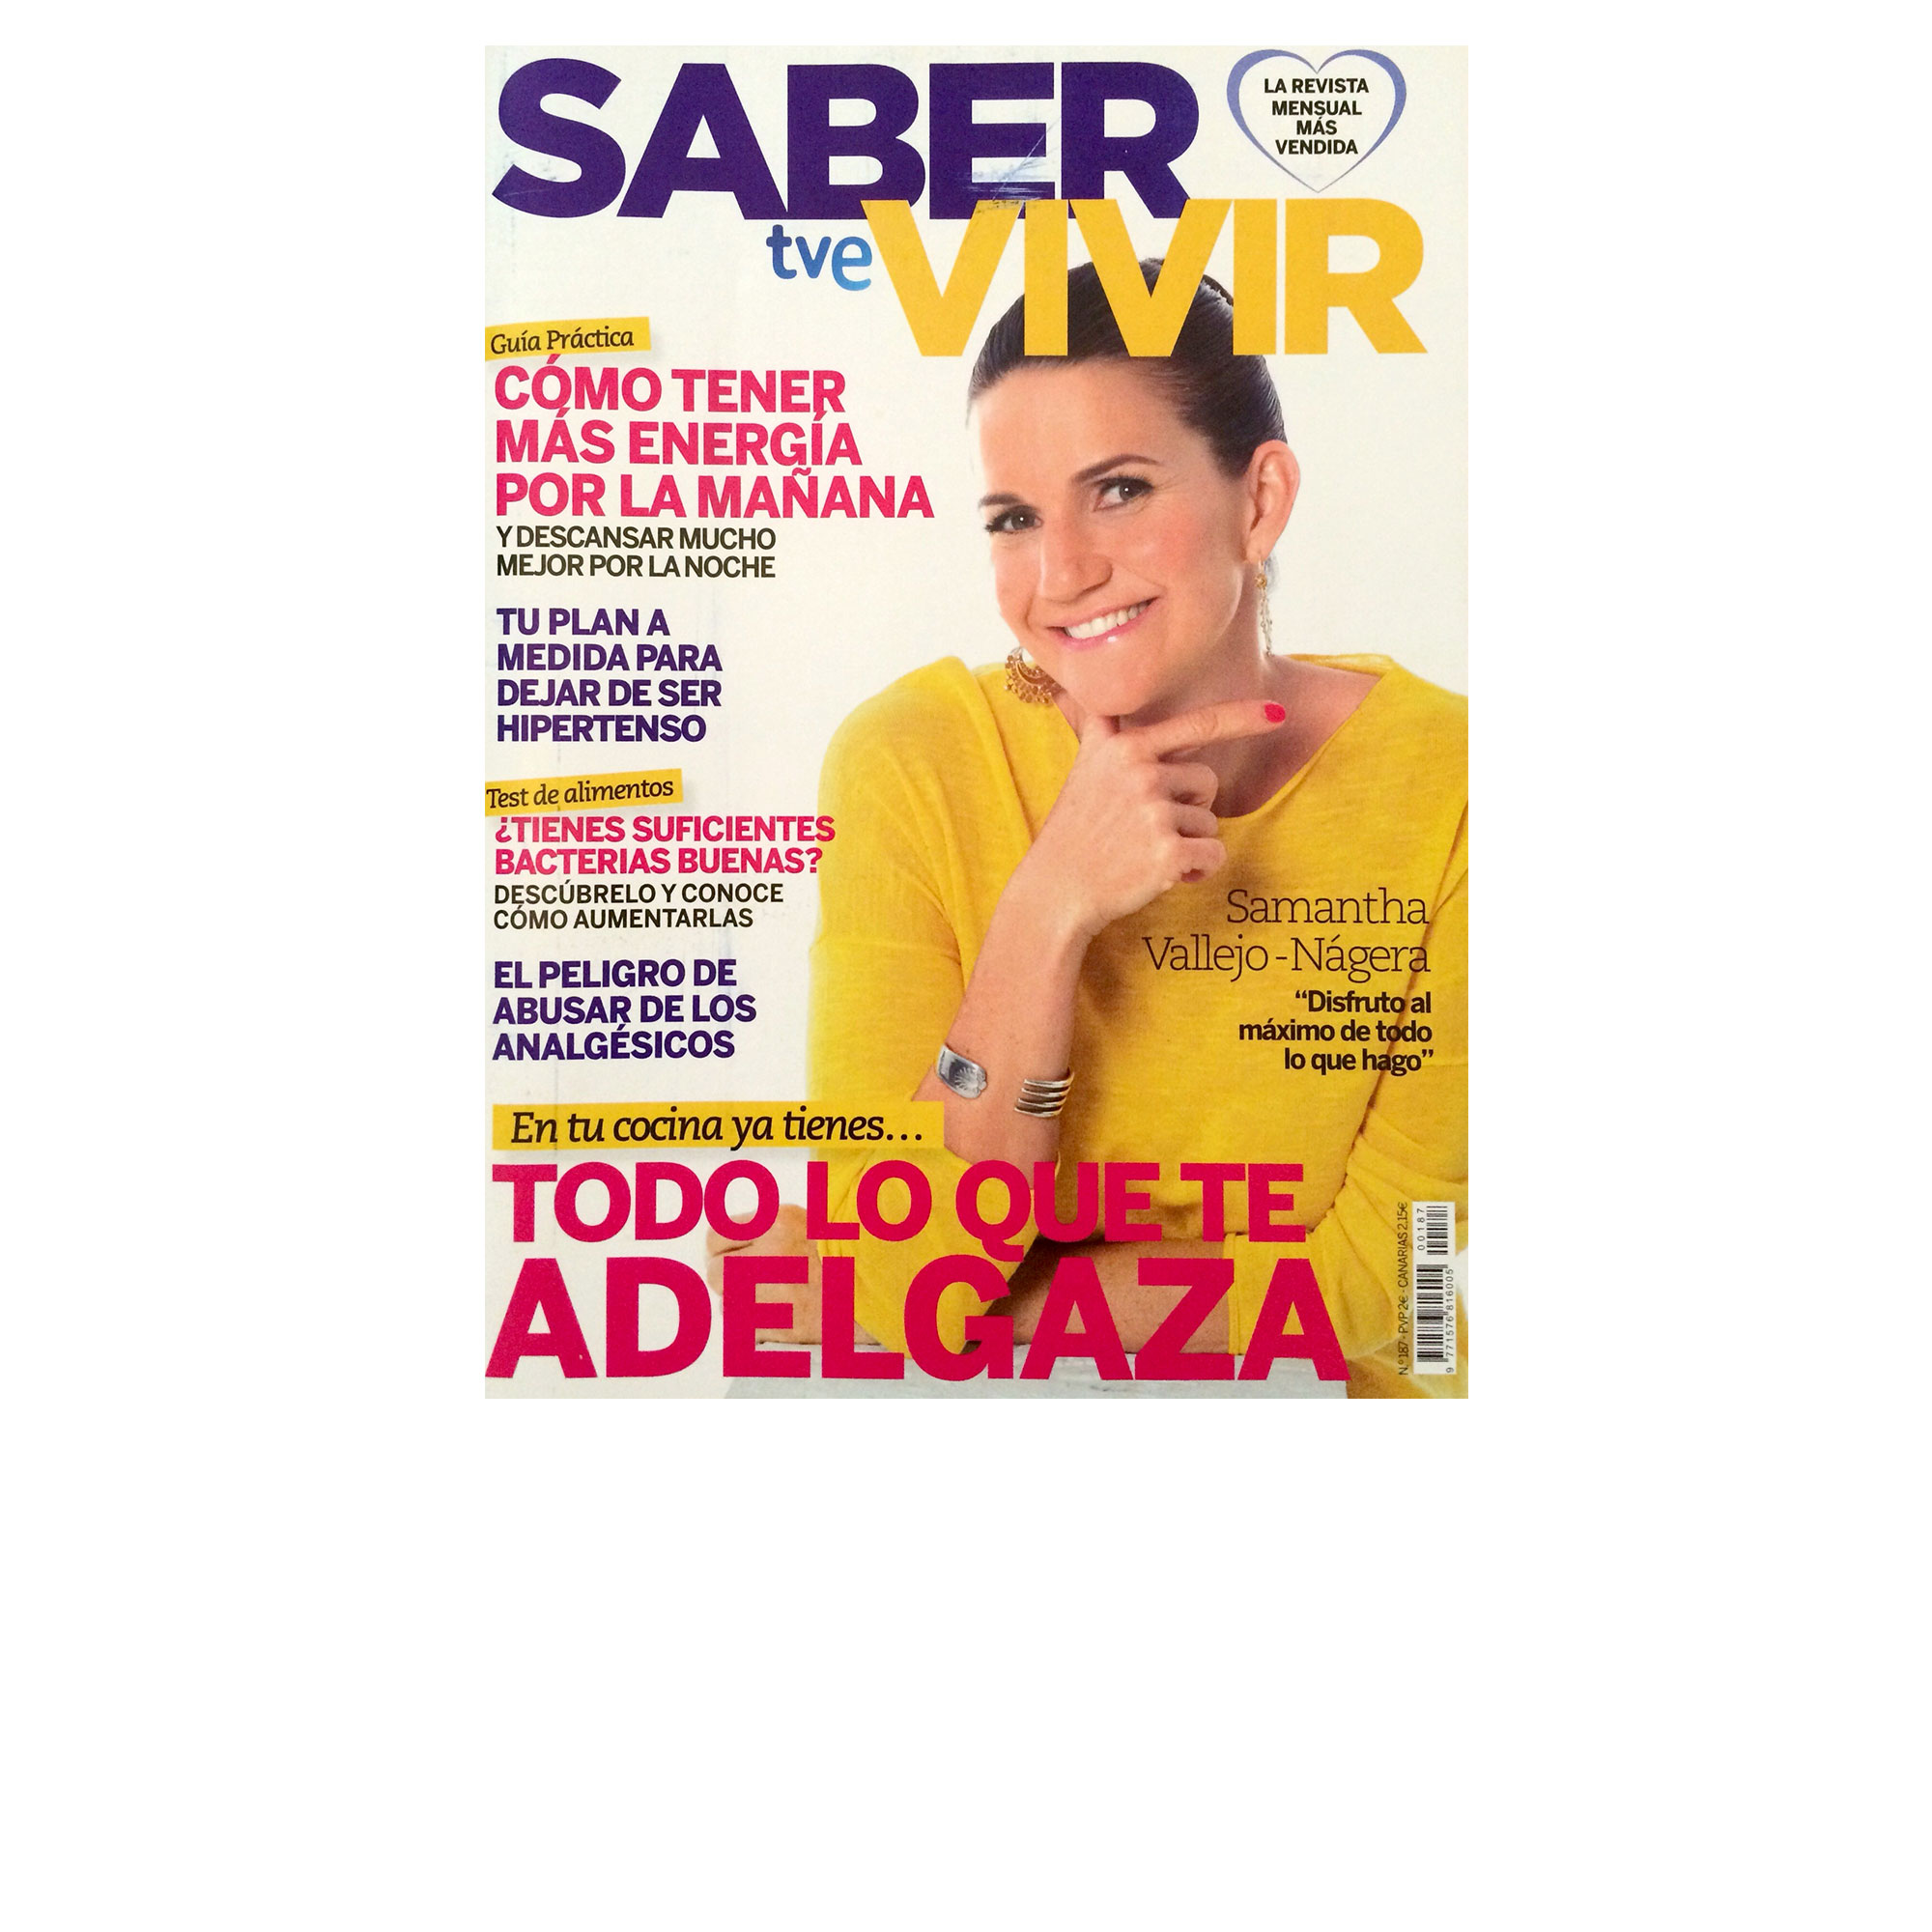 revista_sabervivir_samantha_